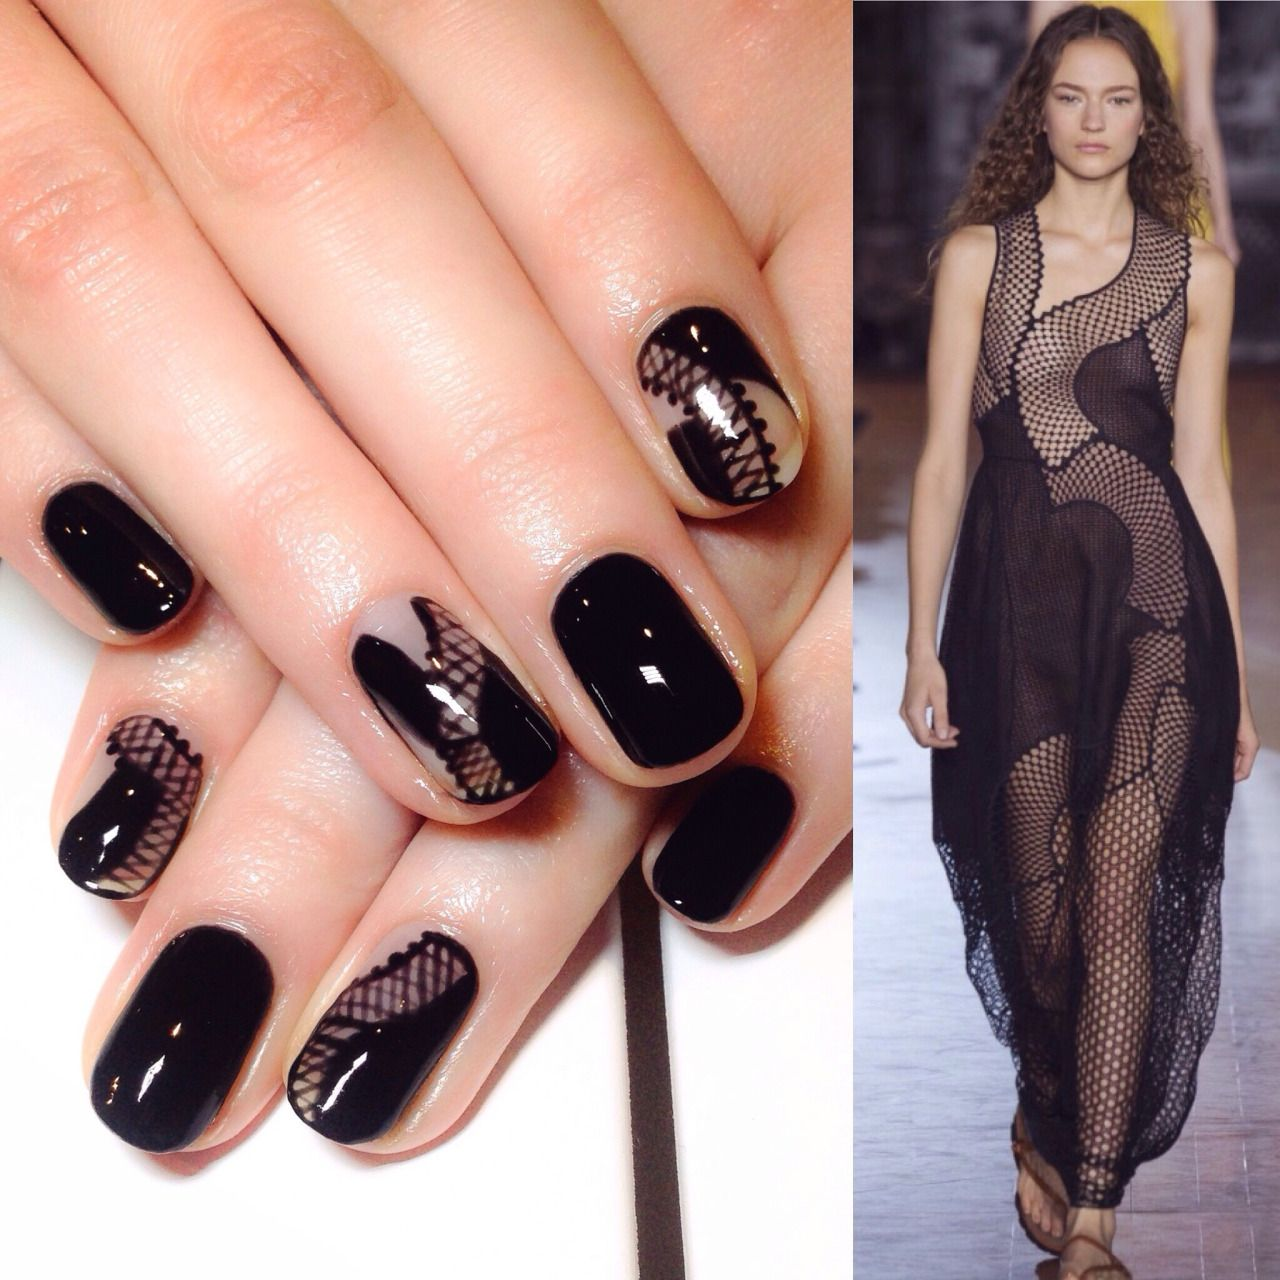 Black dress nails - Black Negative Space Nails By Me Using Bio Sculpture Gel Inspired By Stella Mccartney Ss16